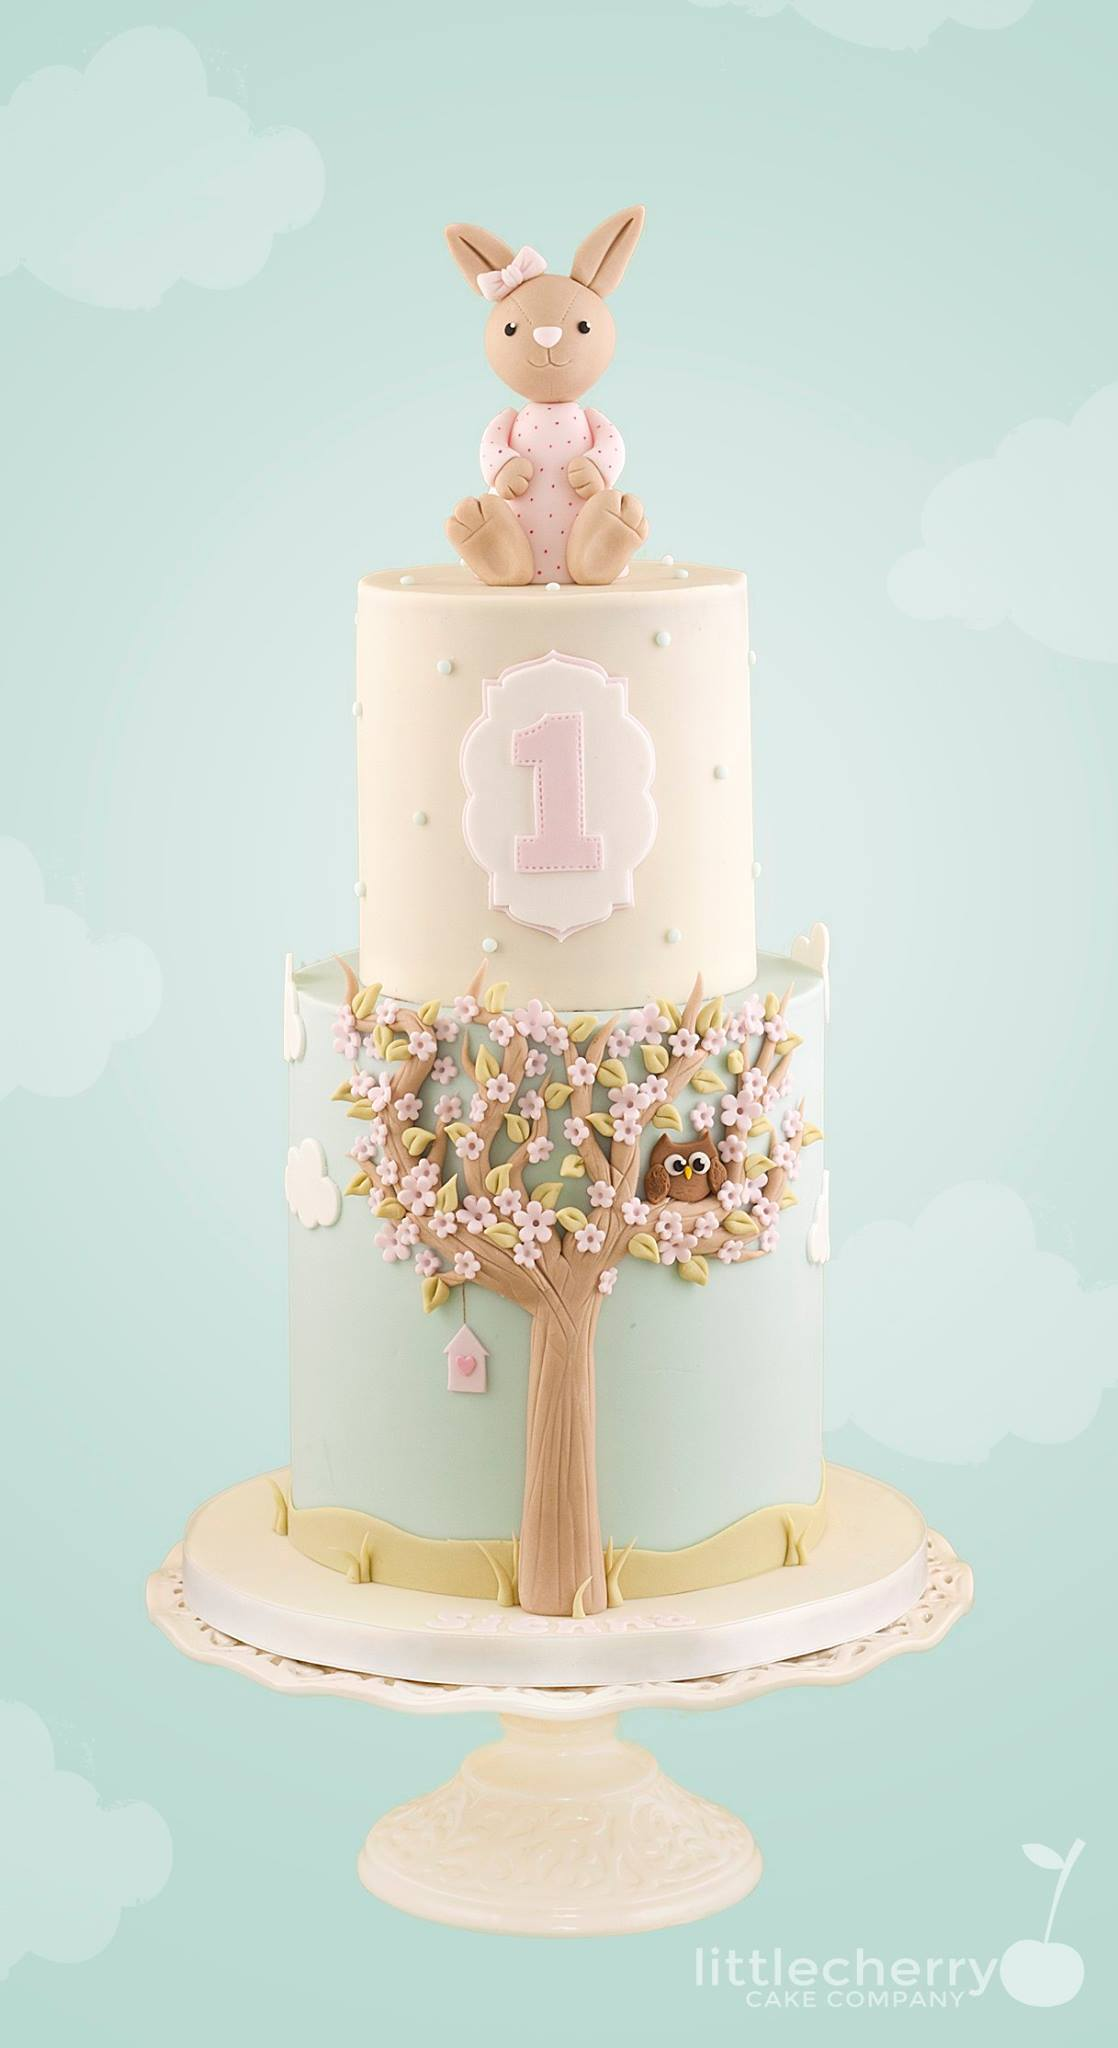 Easter Cake by Tracey Louise Rothwell - Little Cherry Cake Company